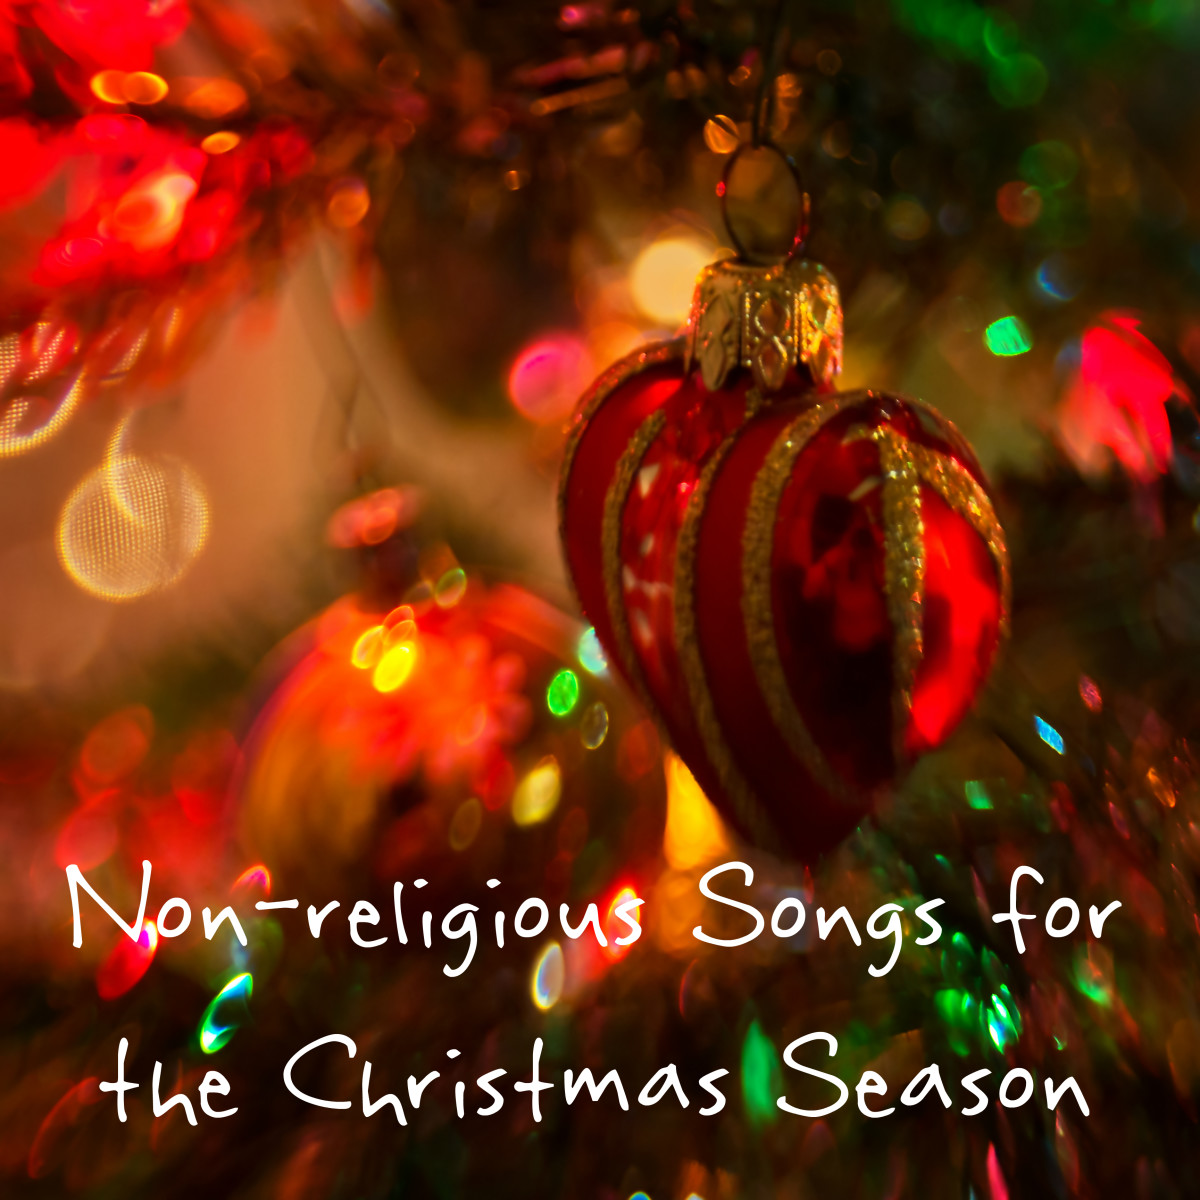 Having an office party or other event and need a playlist of Christmas songs that aren't religious? Or perhaps you're not Christian but want to celebrate the joy of the holiday season.  Here's a playlist of songs without mention of religion.